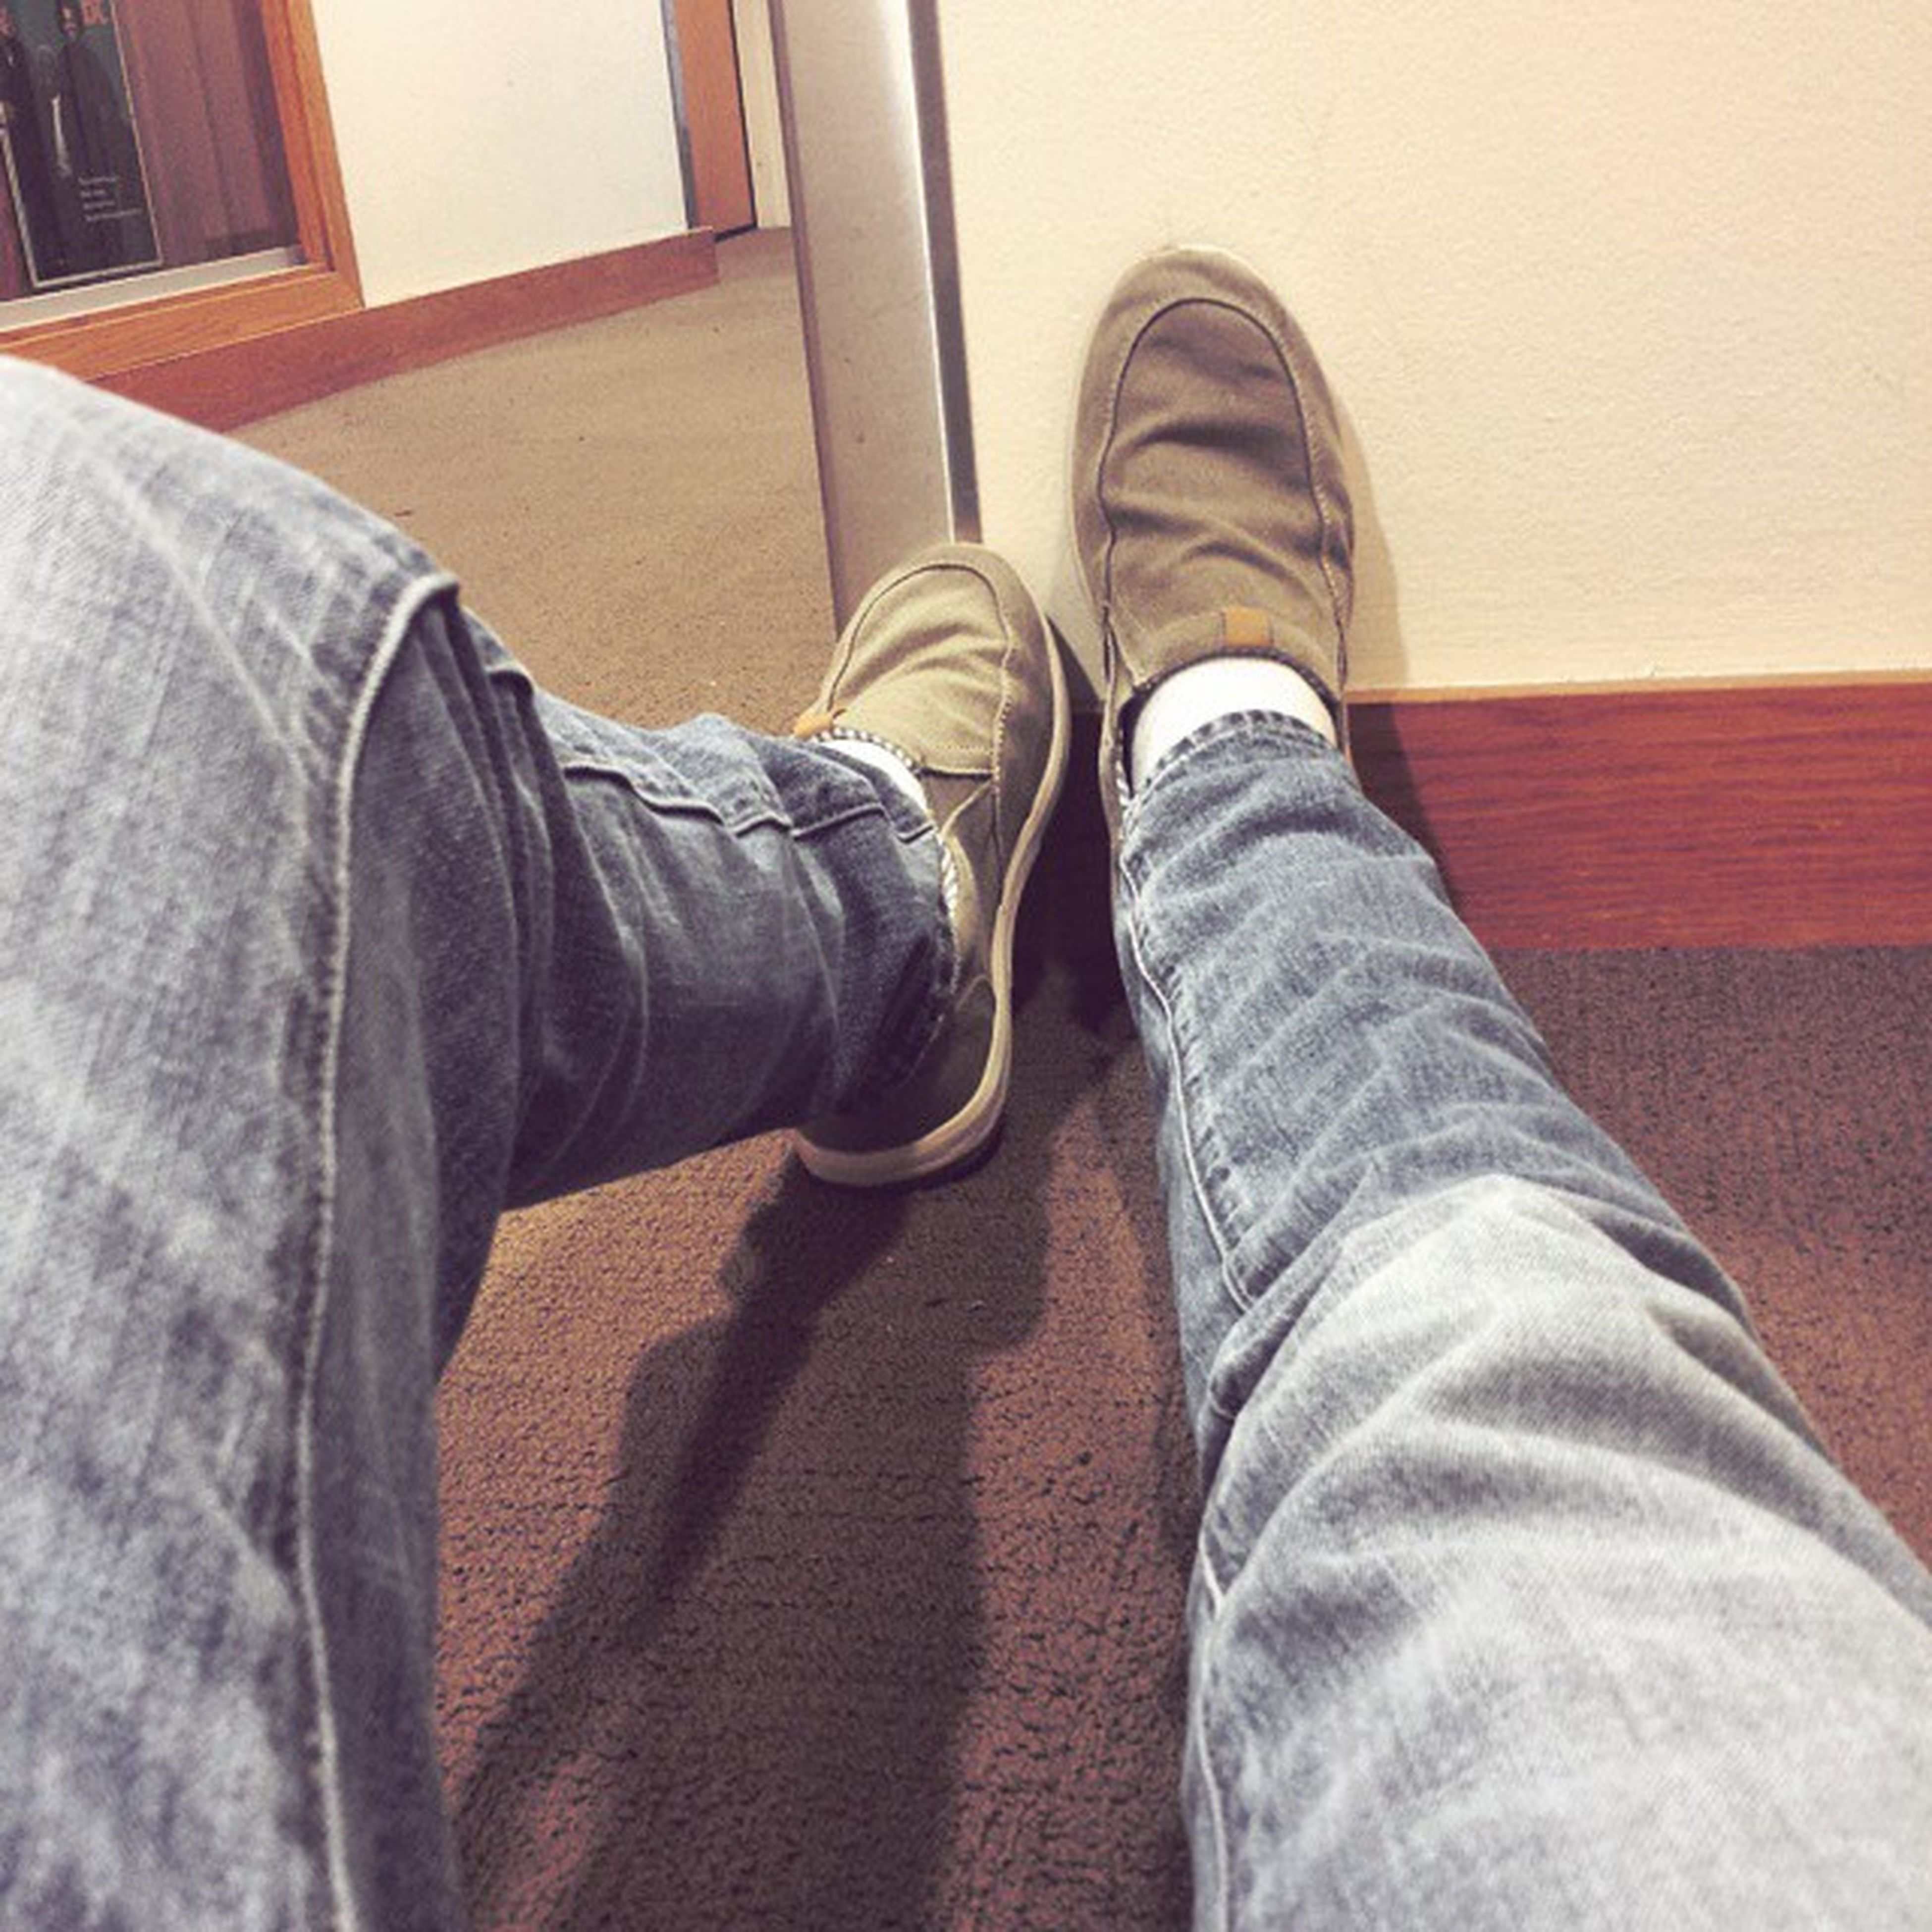 low section, person, shoe, jeans, personal perspective, indoors, human foot, footwear, standing, lifestyles, men, legs crossed at ankle, casual clothing, relaxation, part of, denim, unrecognizable person